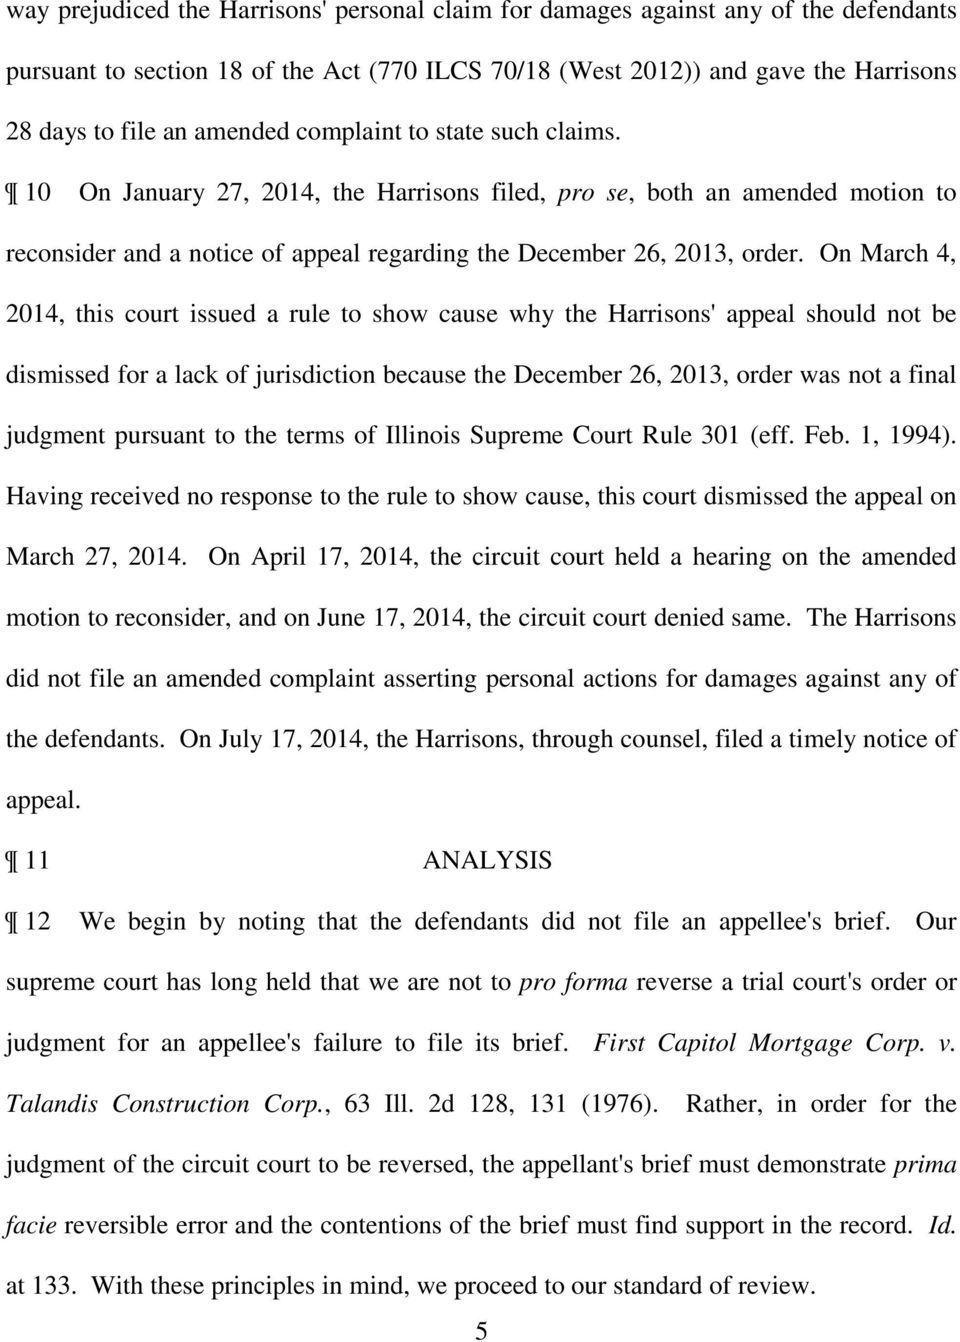 On March 4, 2014, this court issued a rule to show cause why the Harrisons' appeal should not be dismissed for a lack of jurisdiction because the December 26, 2013, order was not a final judgment